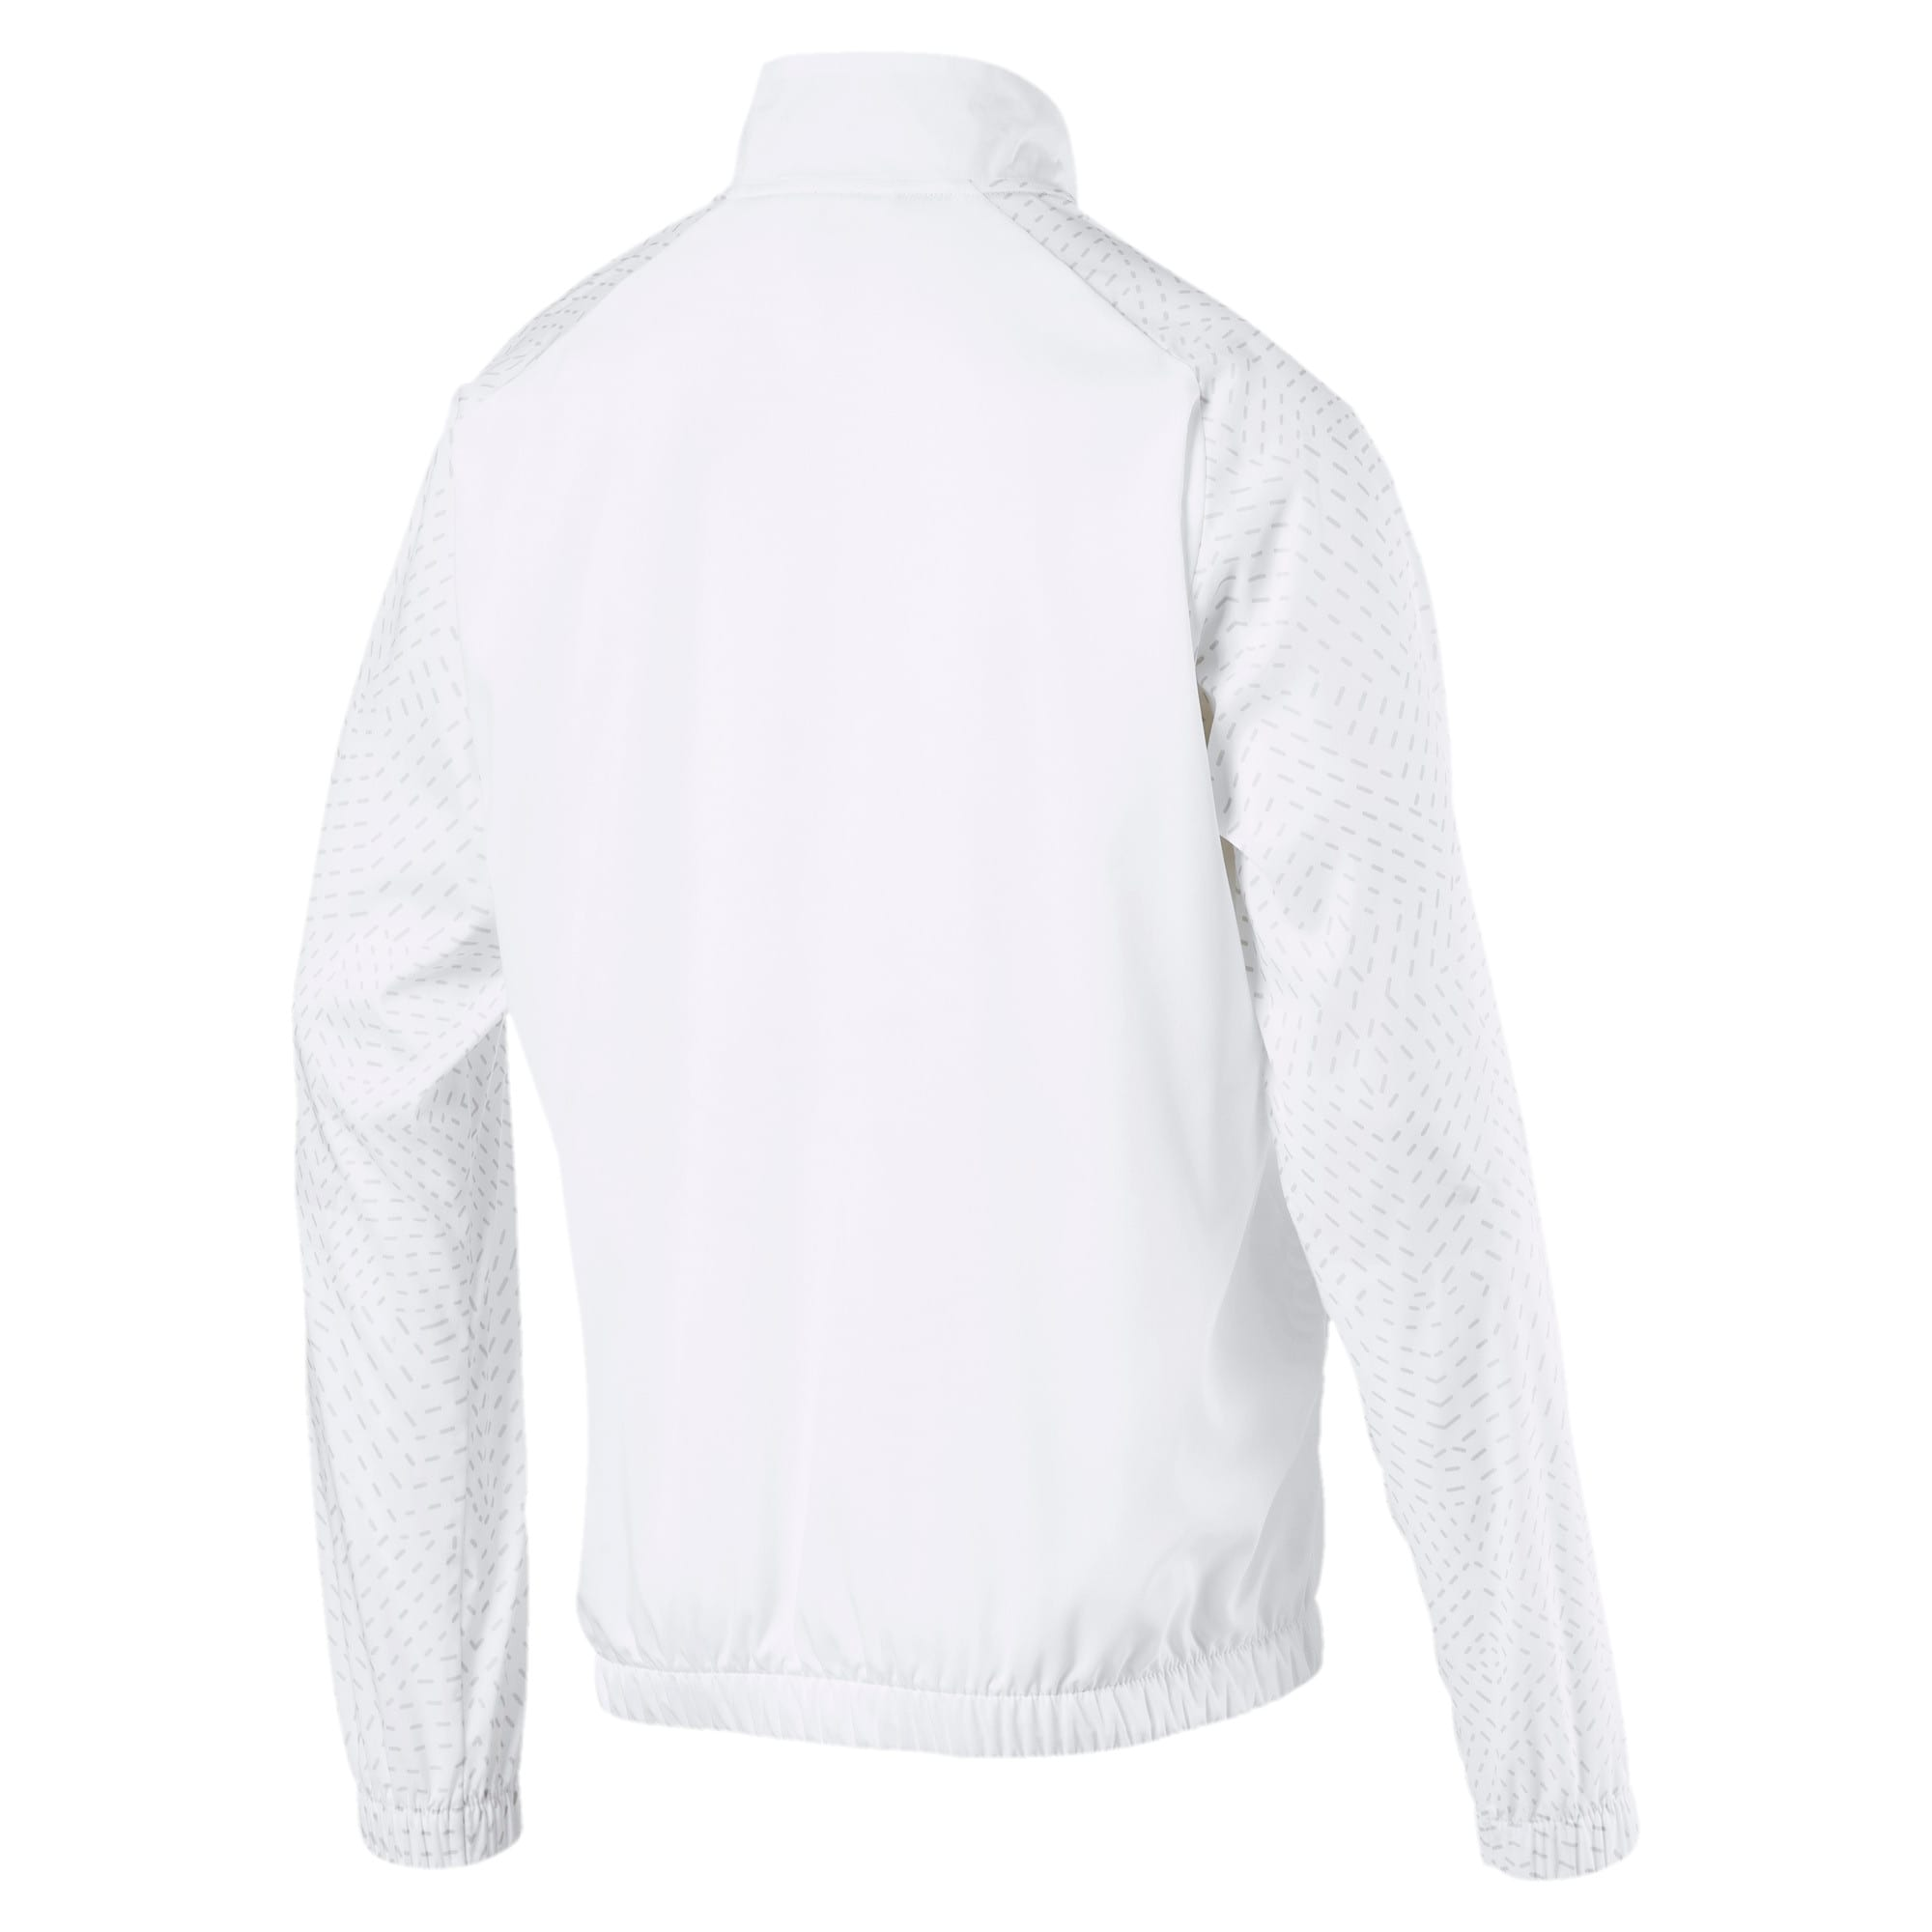 Thumbnail 2 of Energy Woven Herren Sweatjacke, Puma White, medium